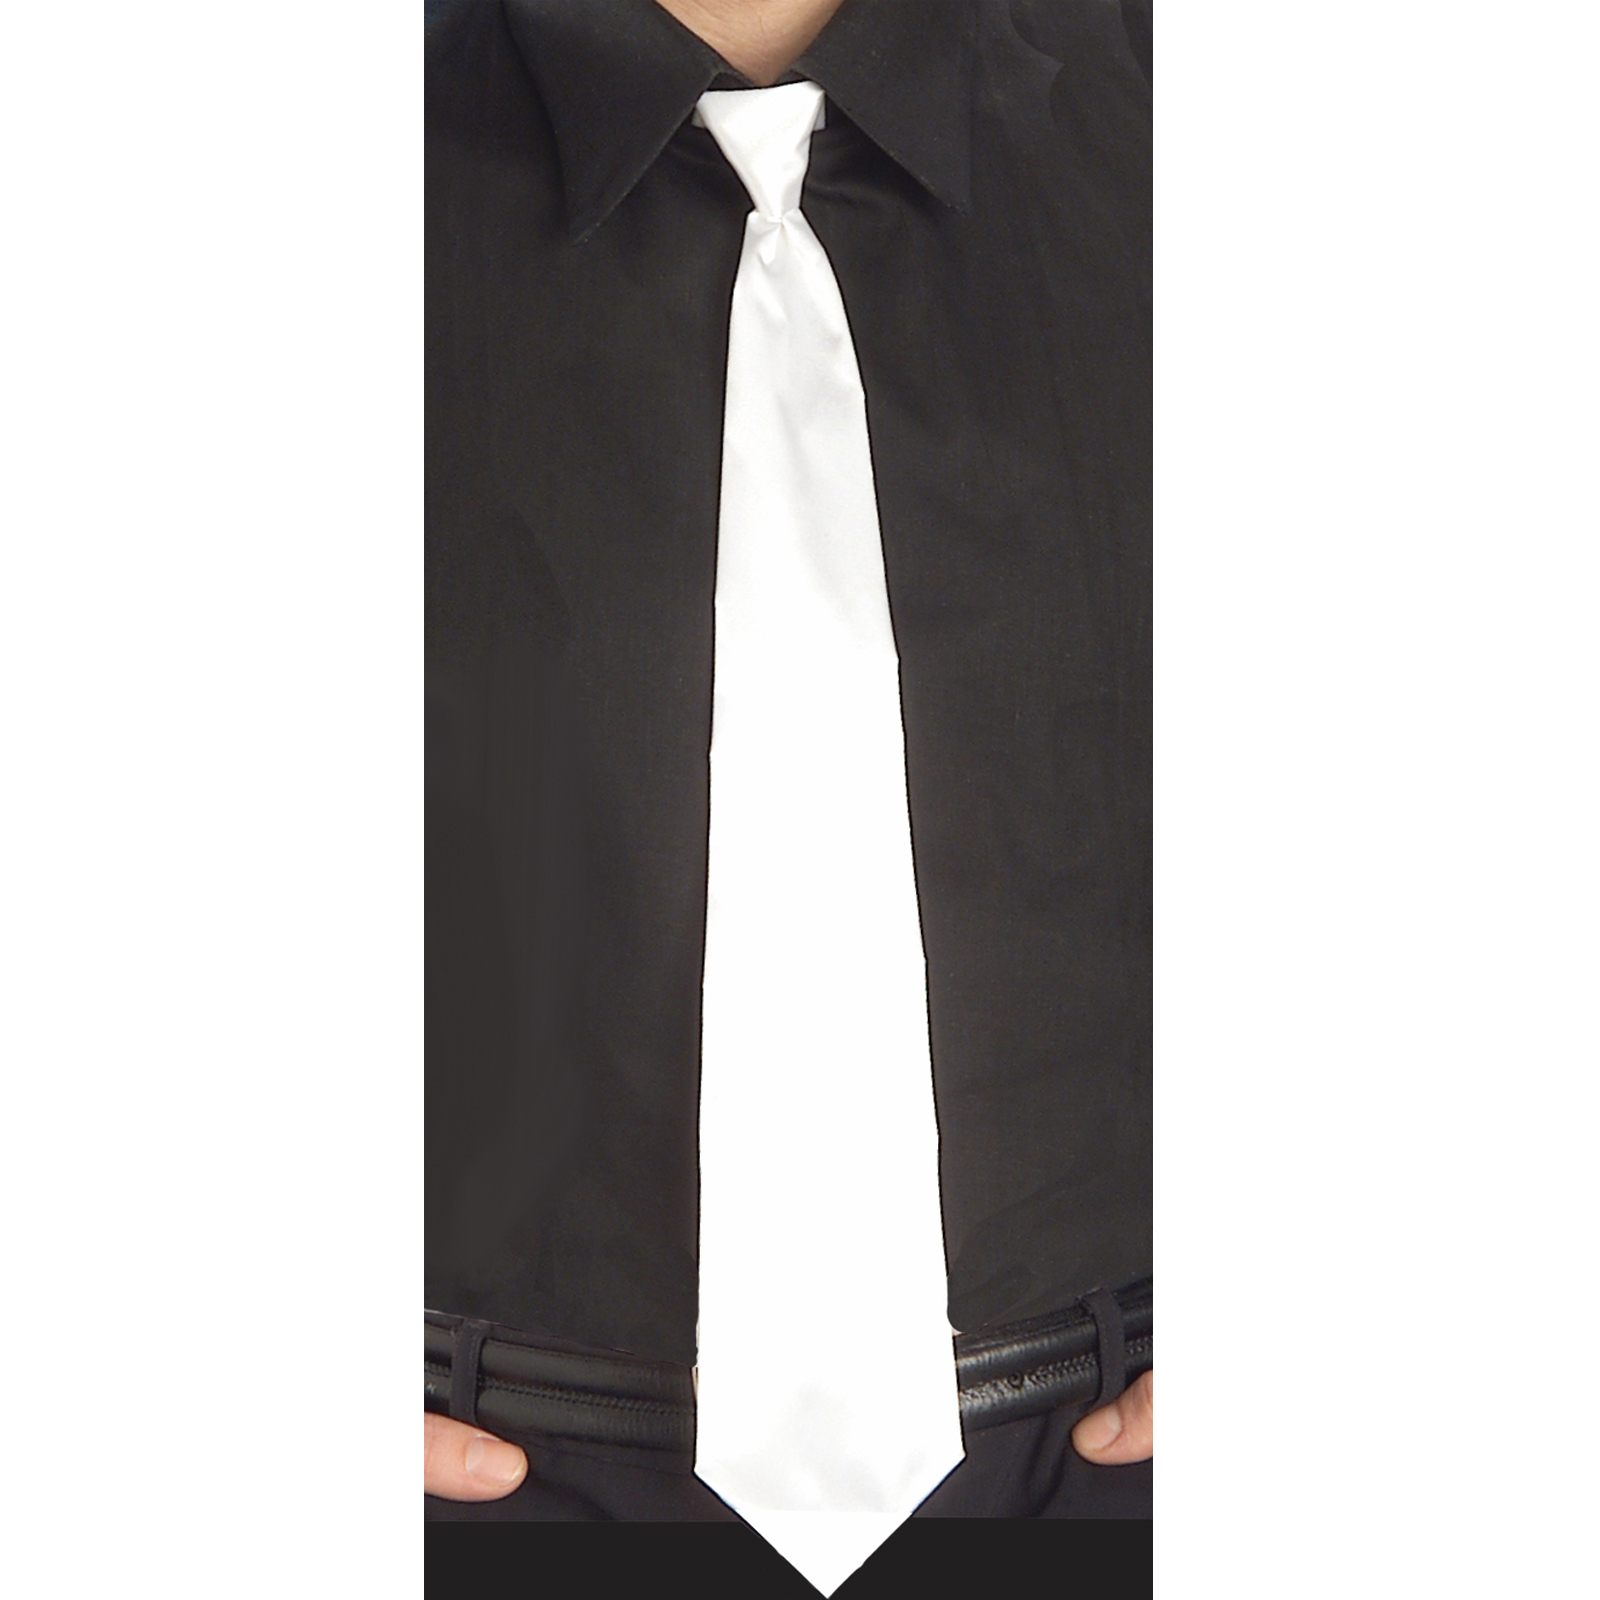 Ties Alsoe In A Wide Variety Of Patterns And Colors Some Ties You Can  Just Clip On To Your Shirt Collar, While Others Have